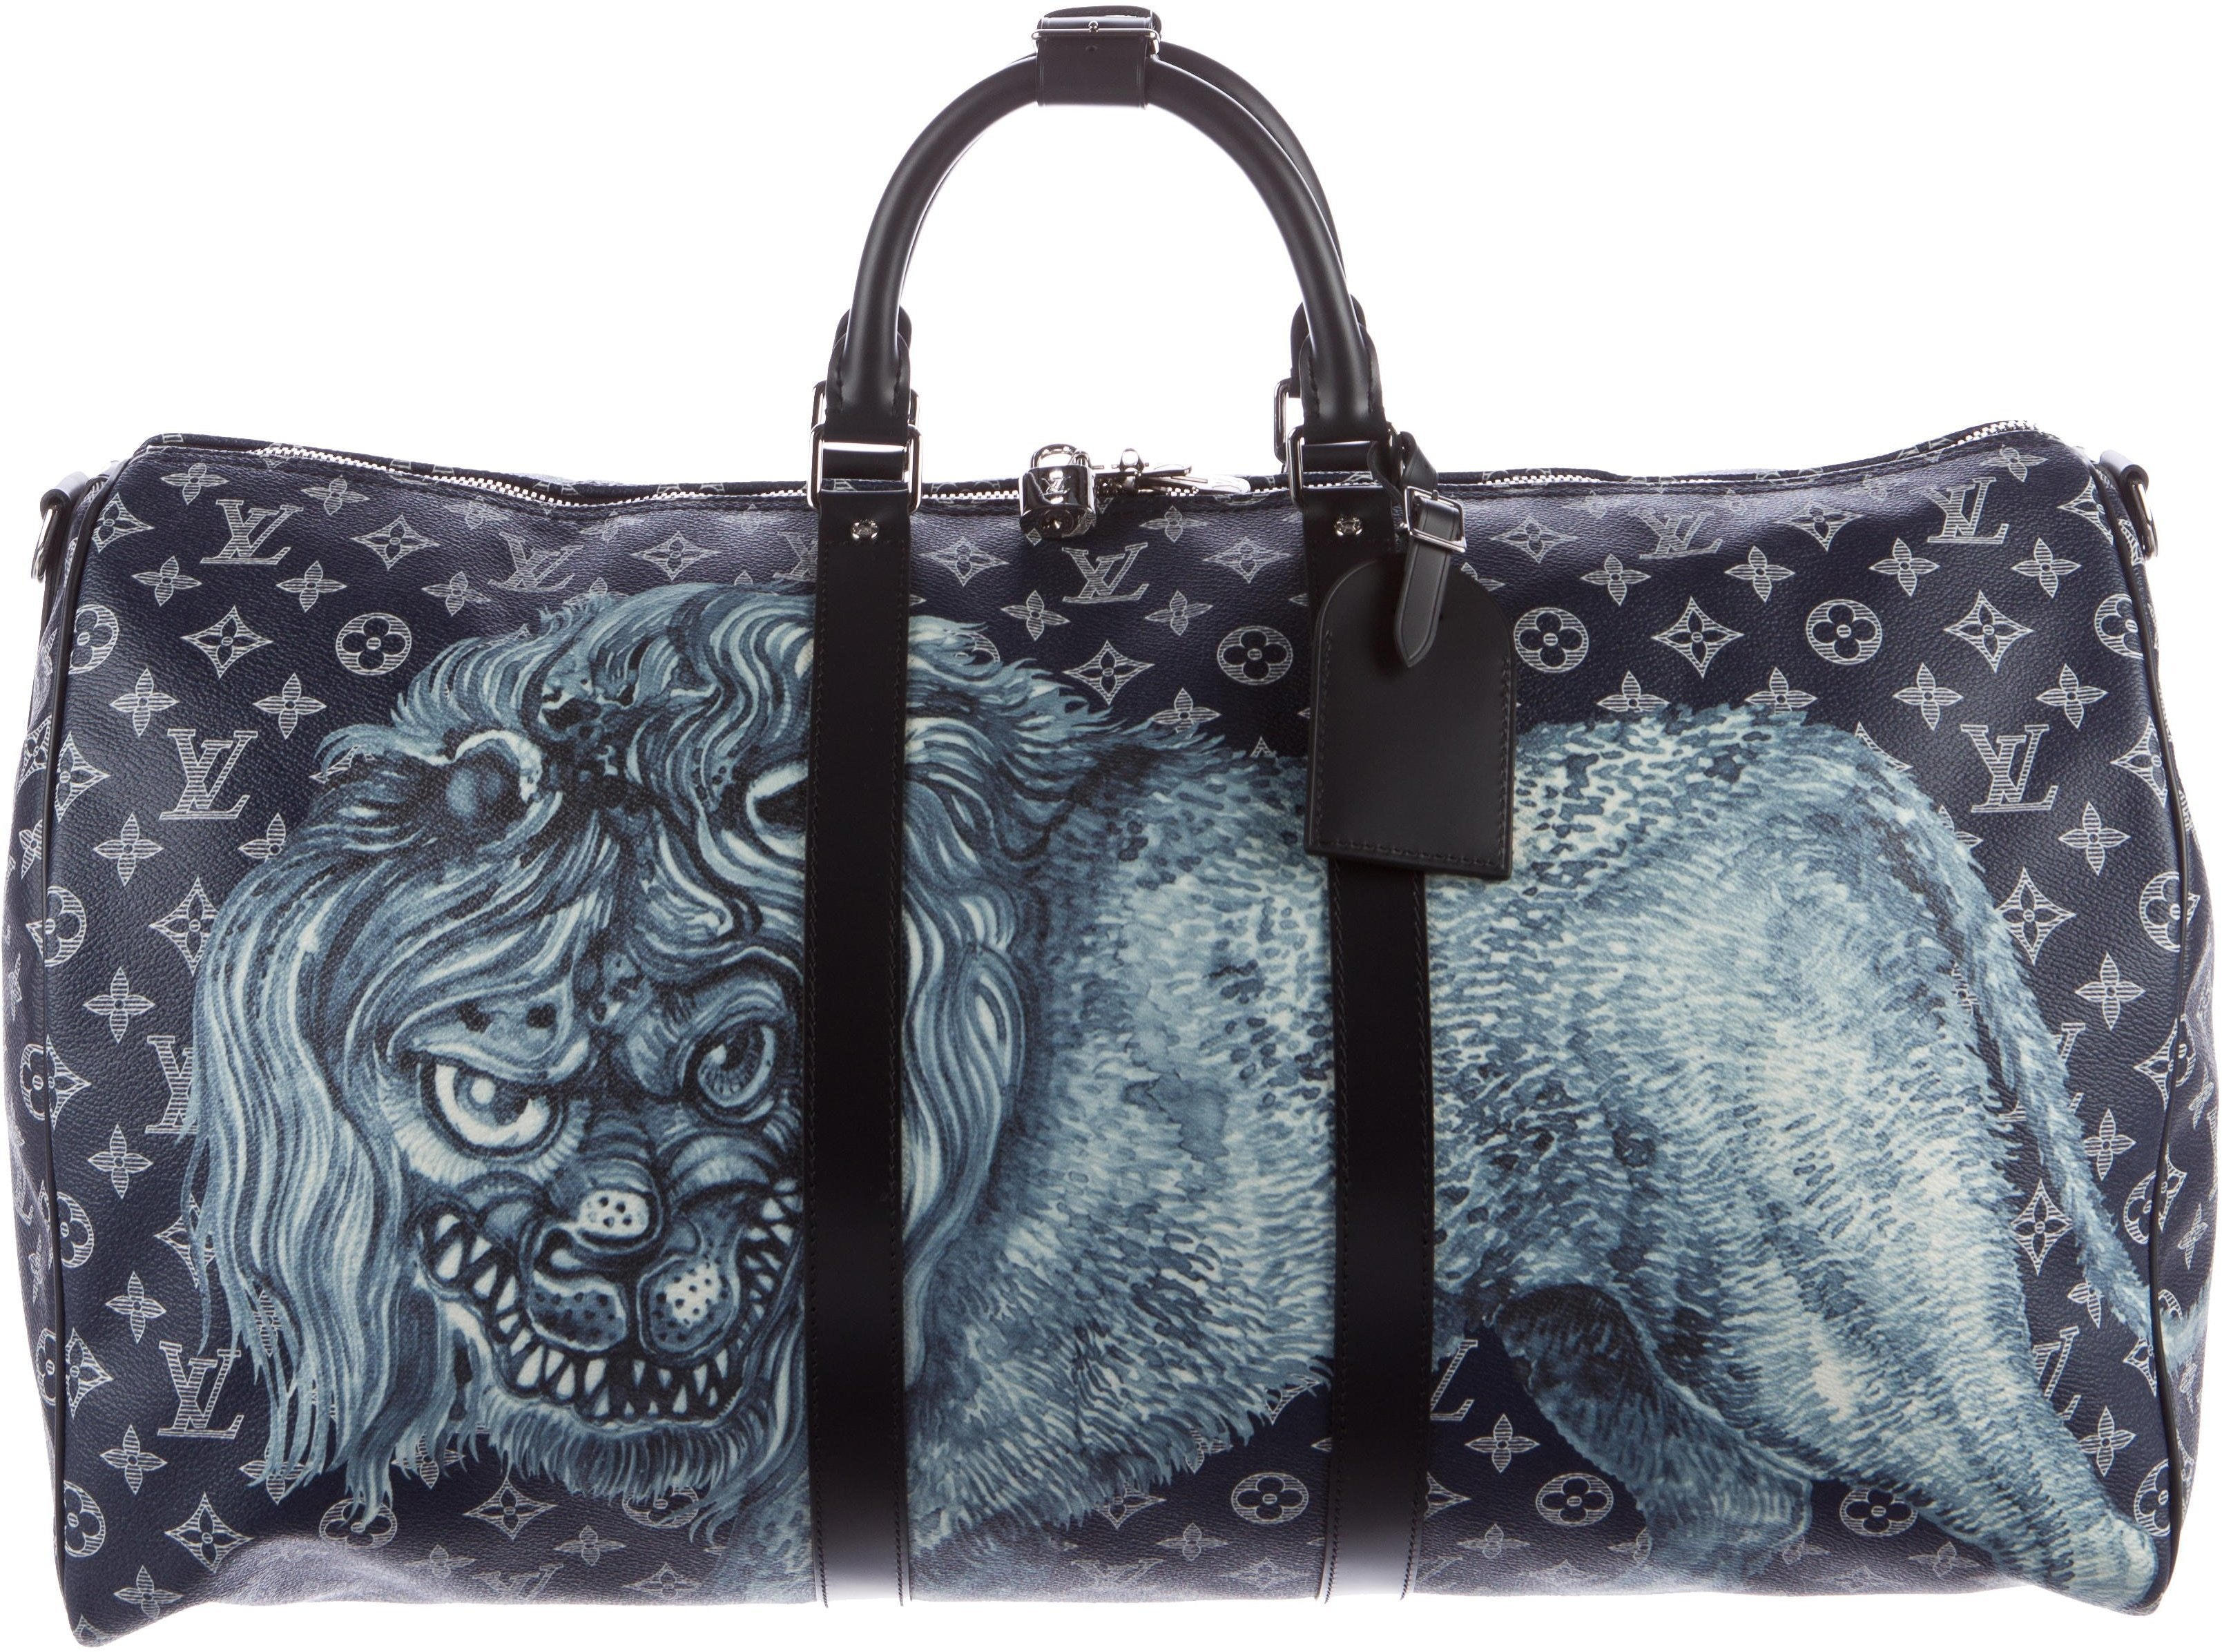 Louis Vuitton Duffle Keepall Bandouliere Monogram Savane Lion Motif (With Accessories) 55